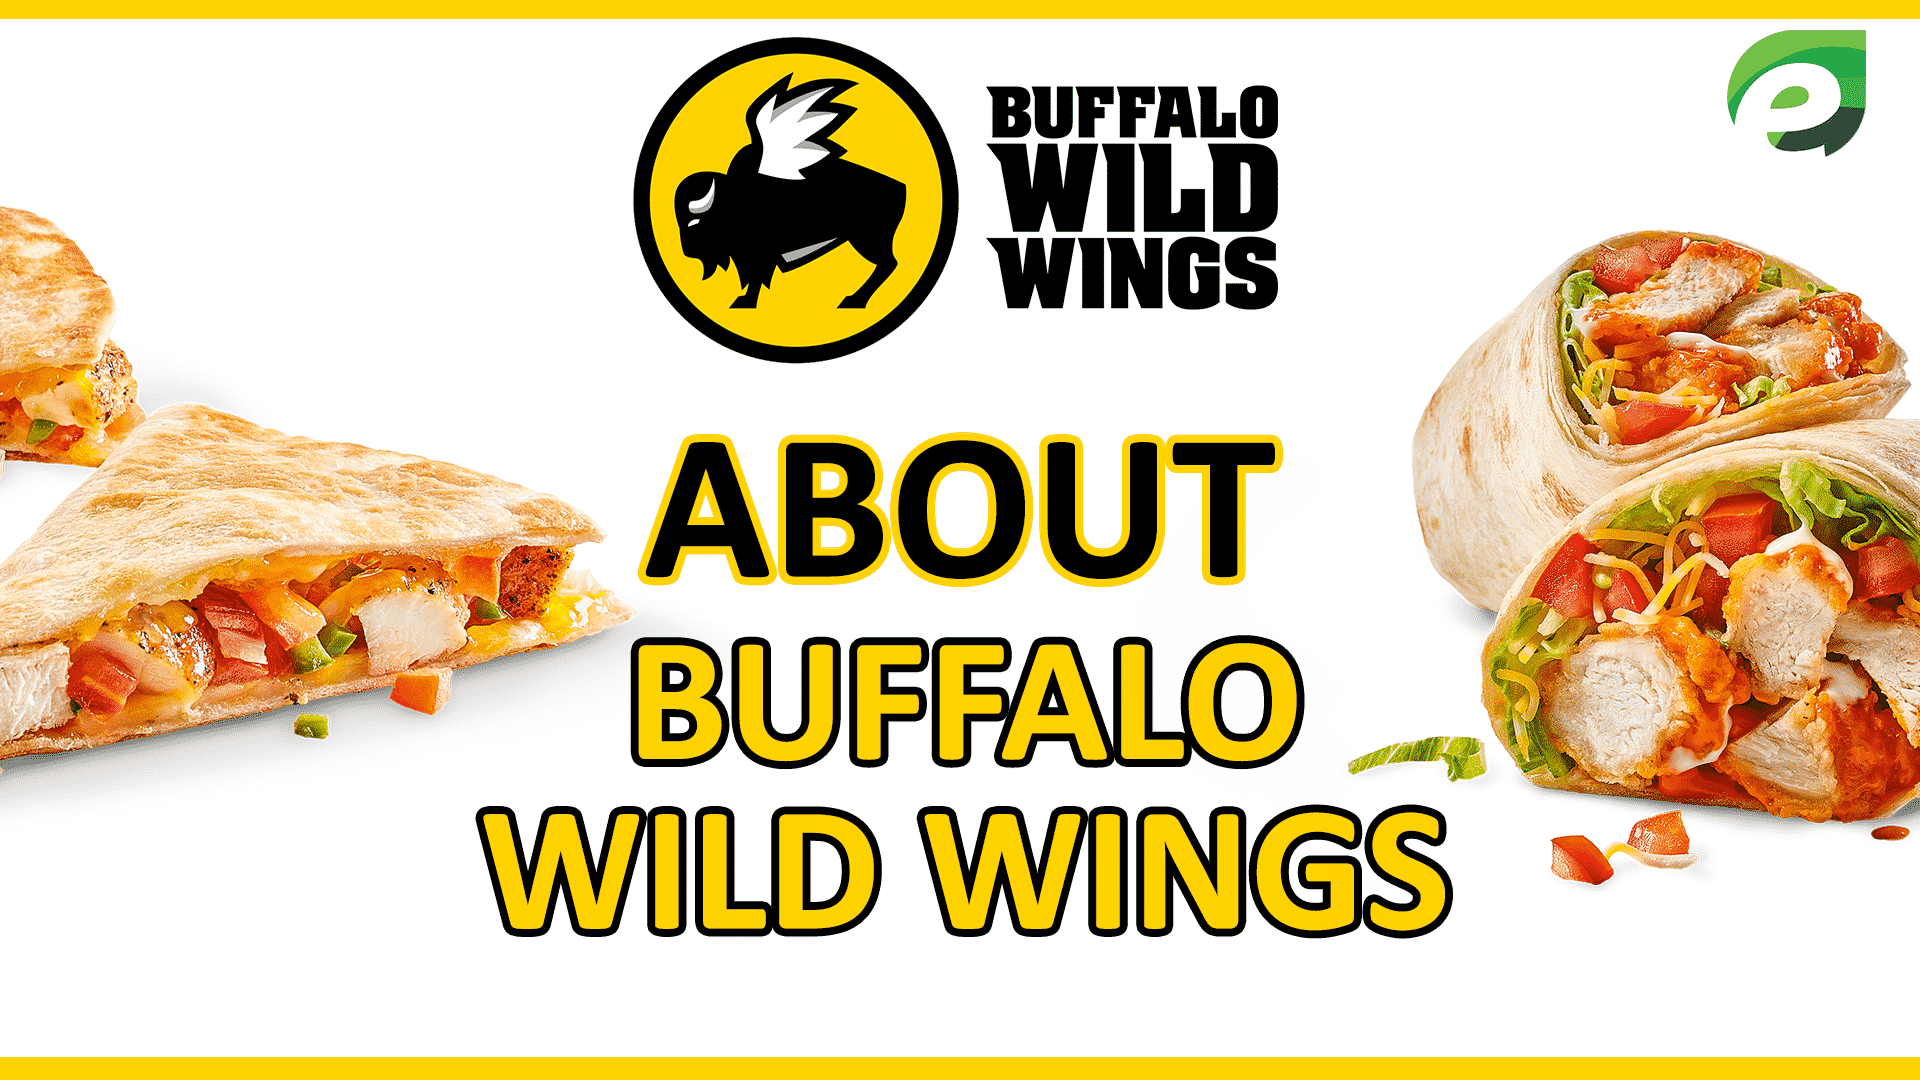 About Buffalo Wild Wings